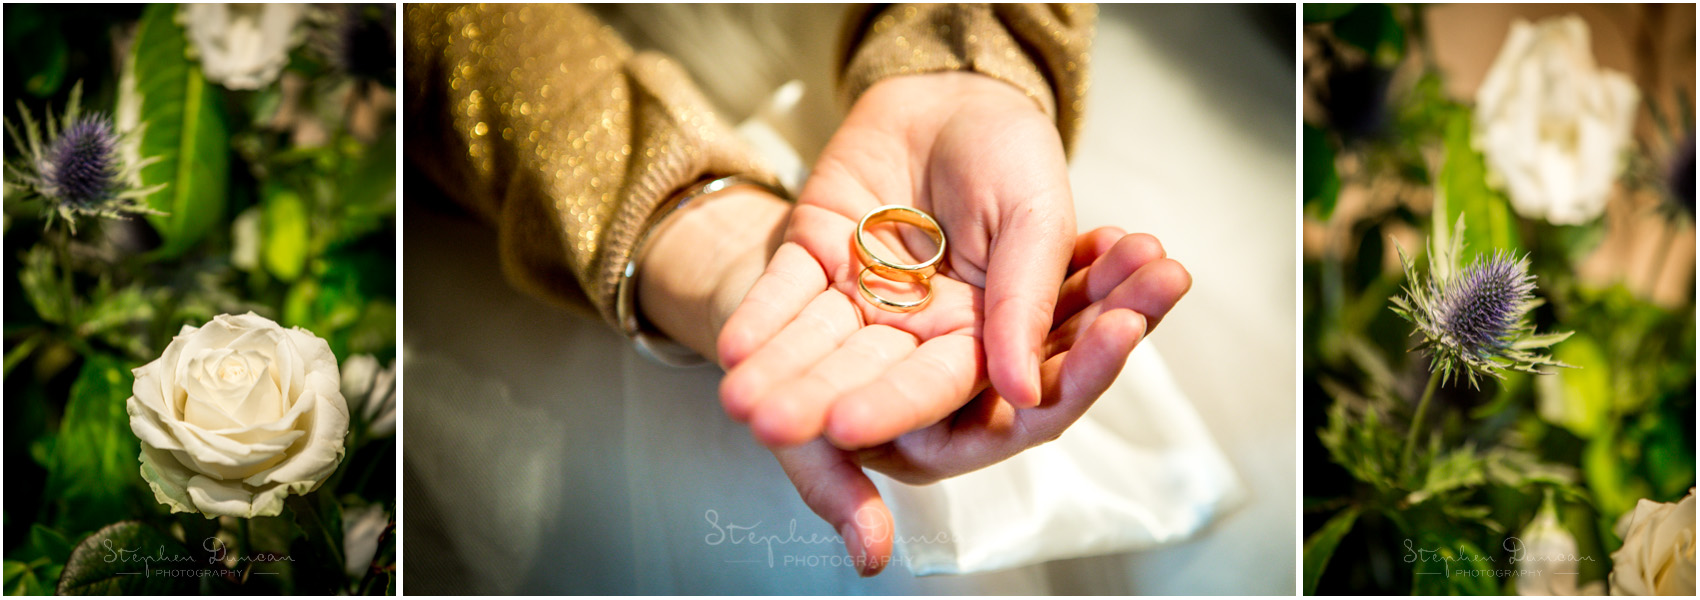 Romsey Abbey wedding photographer ring and flower details